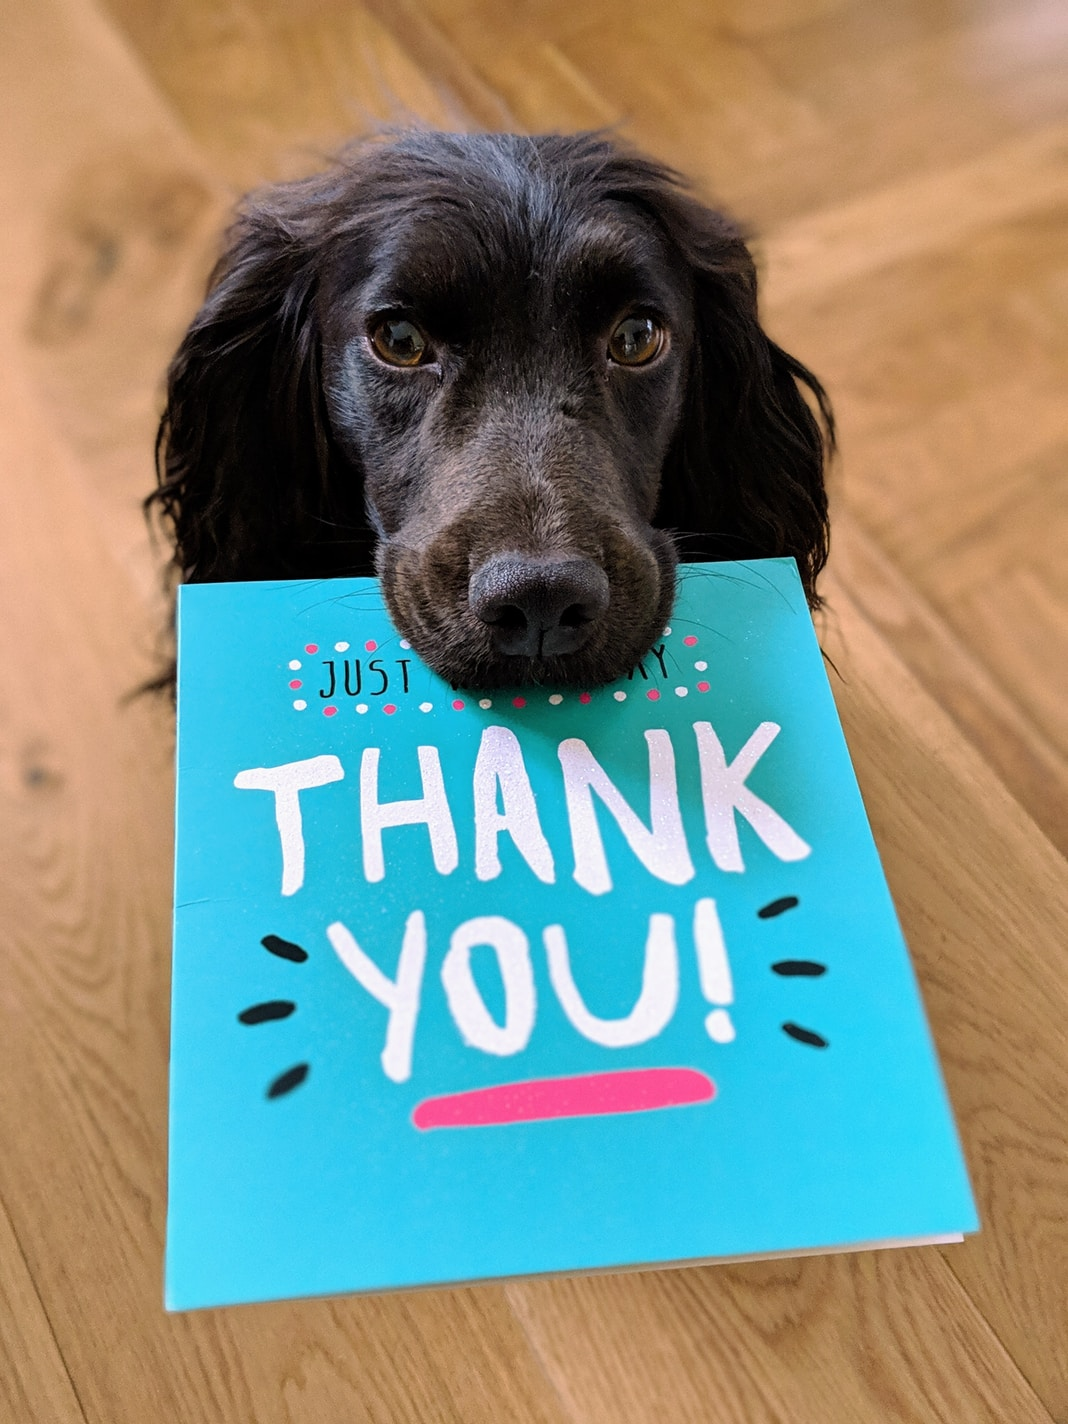 dog biting Thank You mail paper